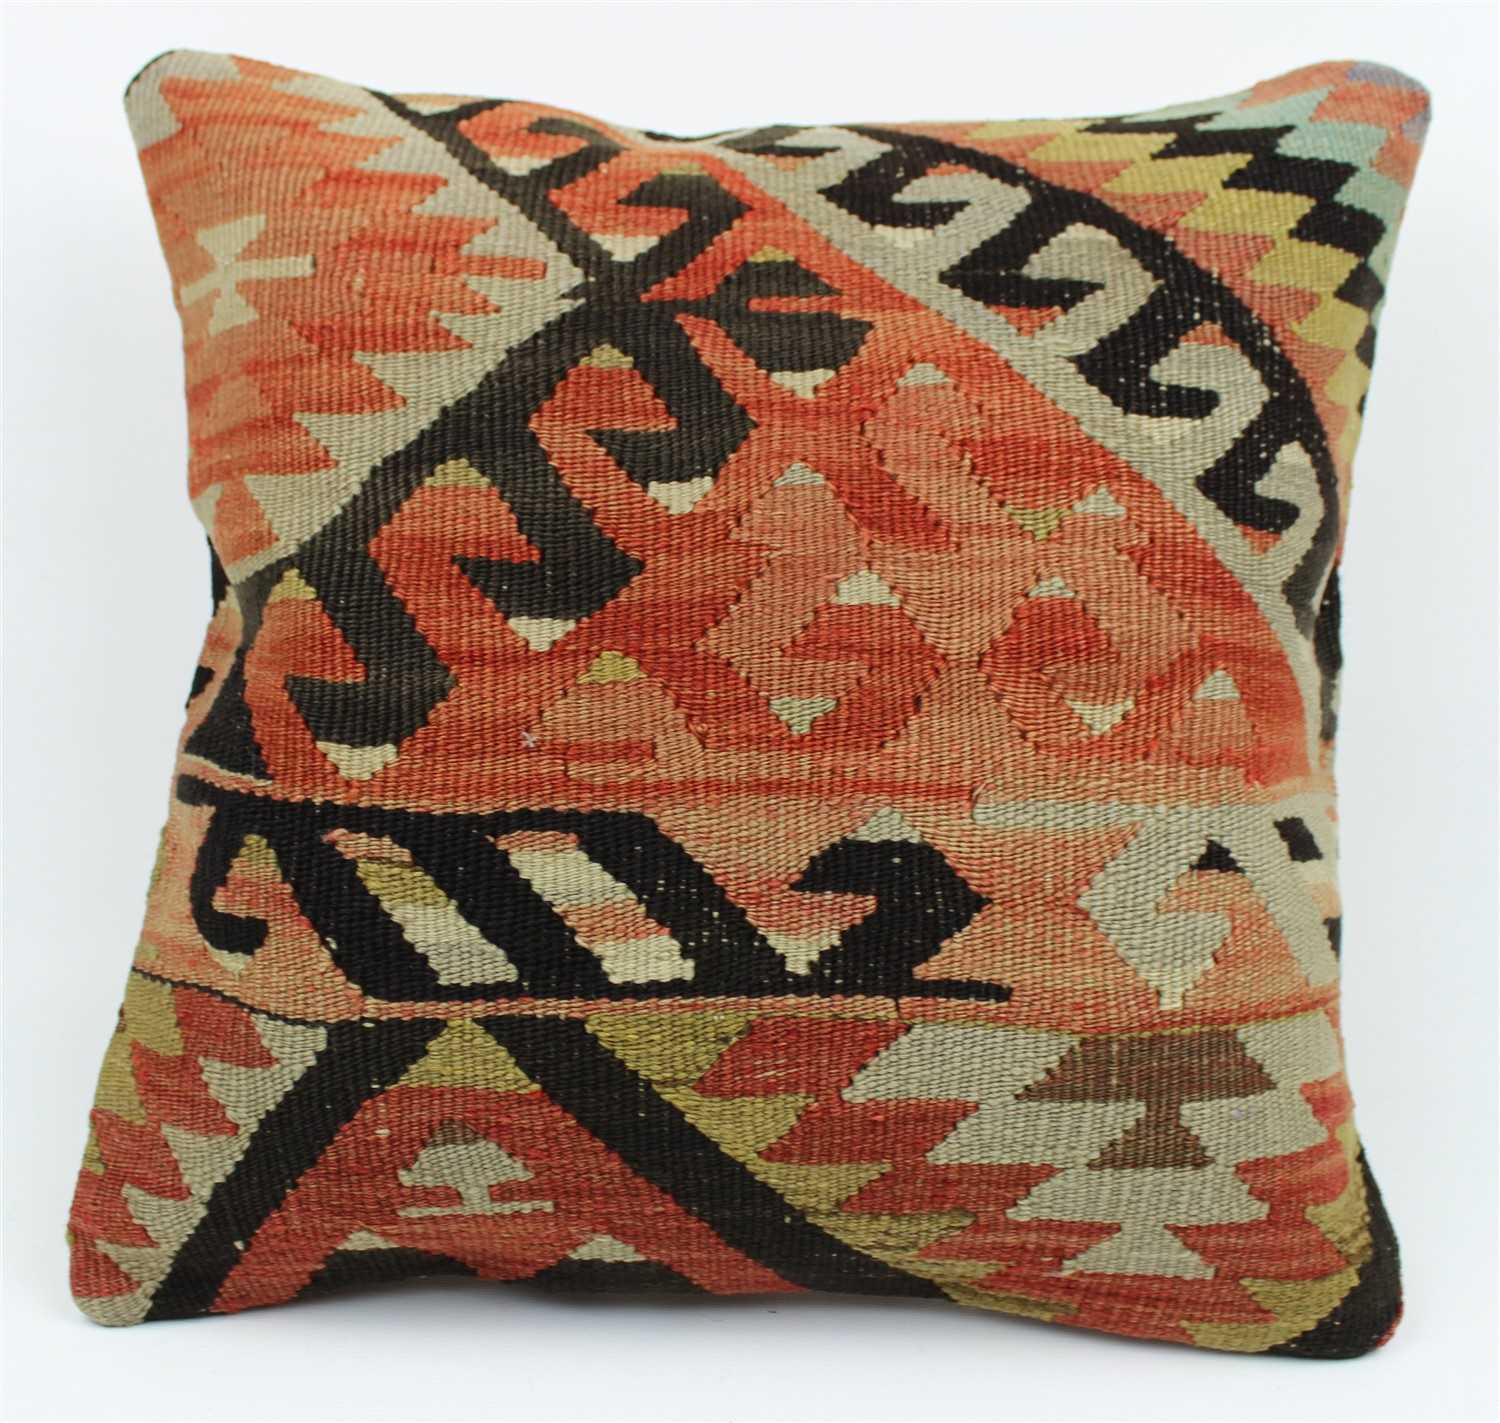 two vintage of pillows sale rug outdoor set pillow pin kilim turkish covers case cushion